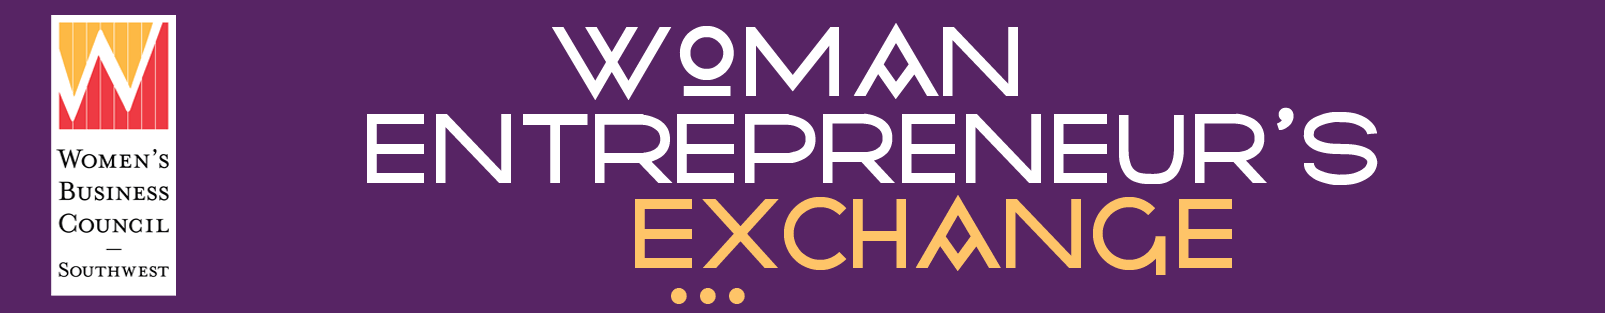 2018 January Woman Entrepreneur's Exchange